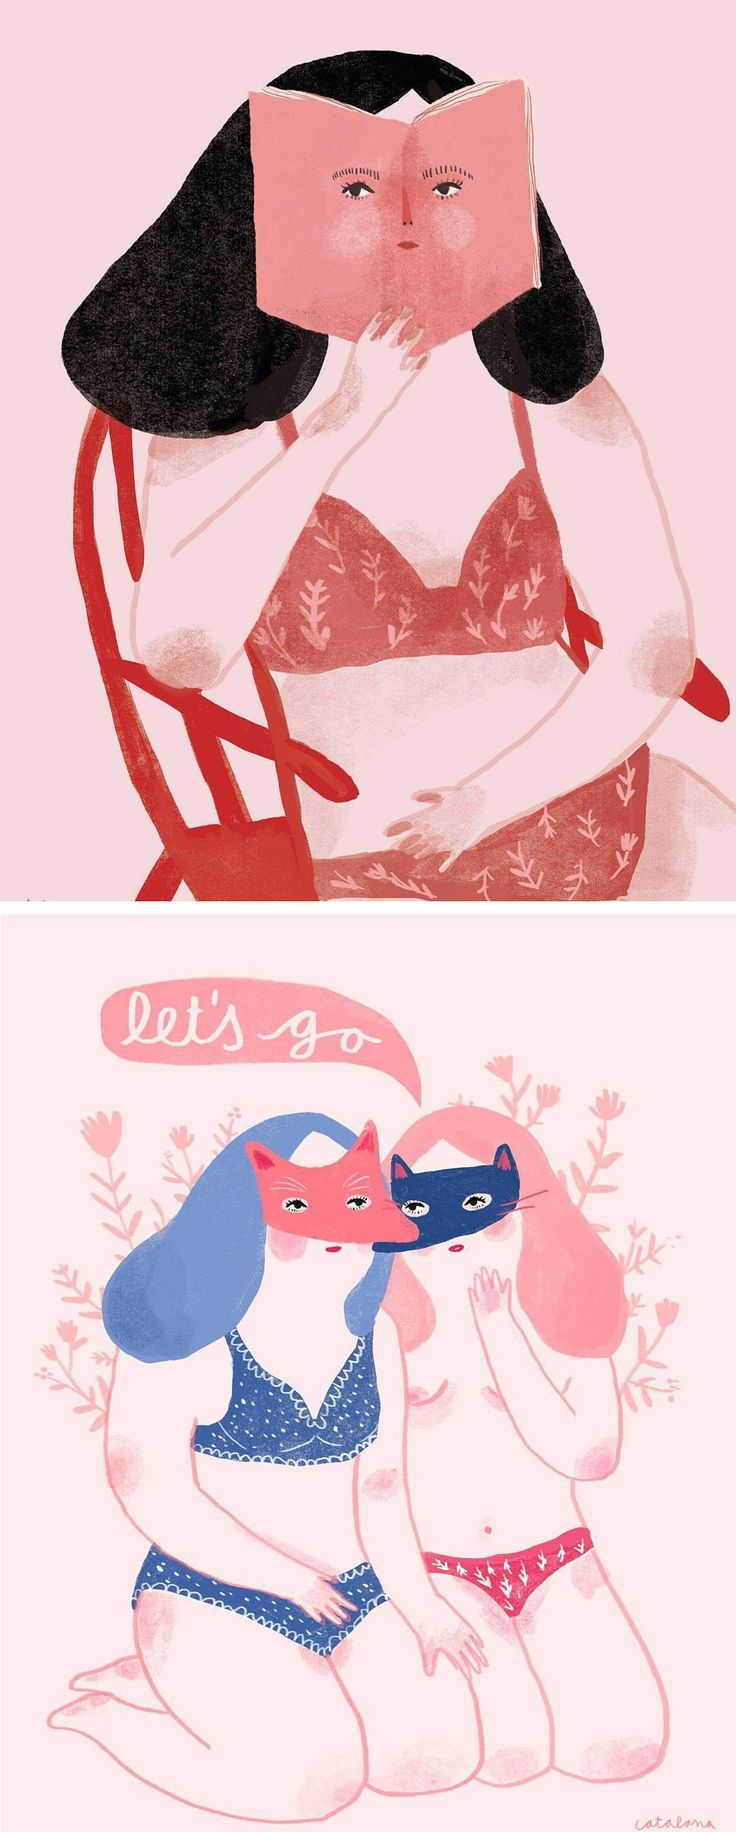 If life has you down, escape to the dreamy illustrations of Camila Ortega. Her cotton candy colored images occupy neither here nor there.